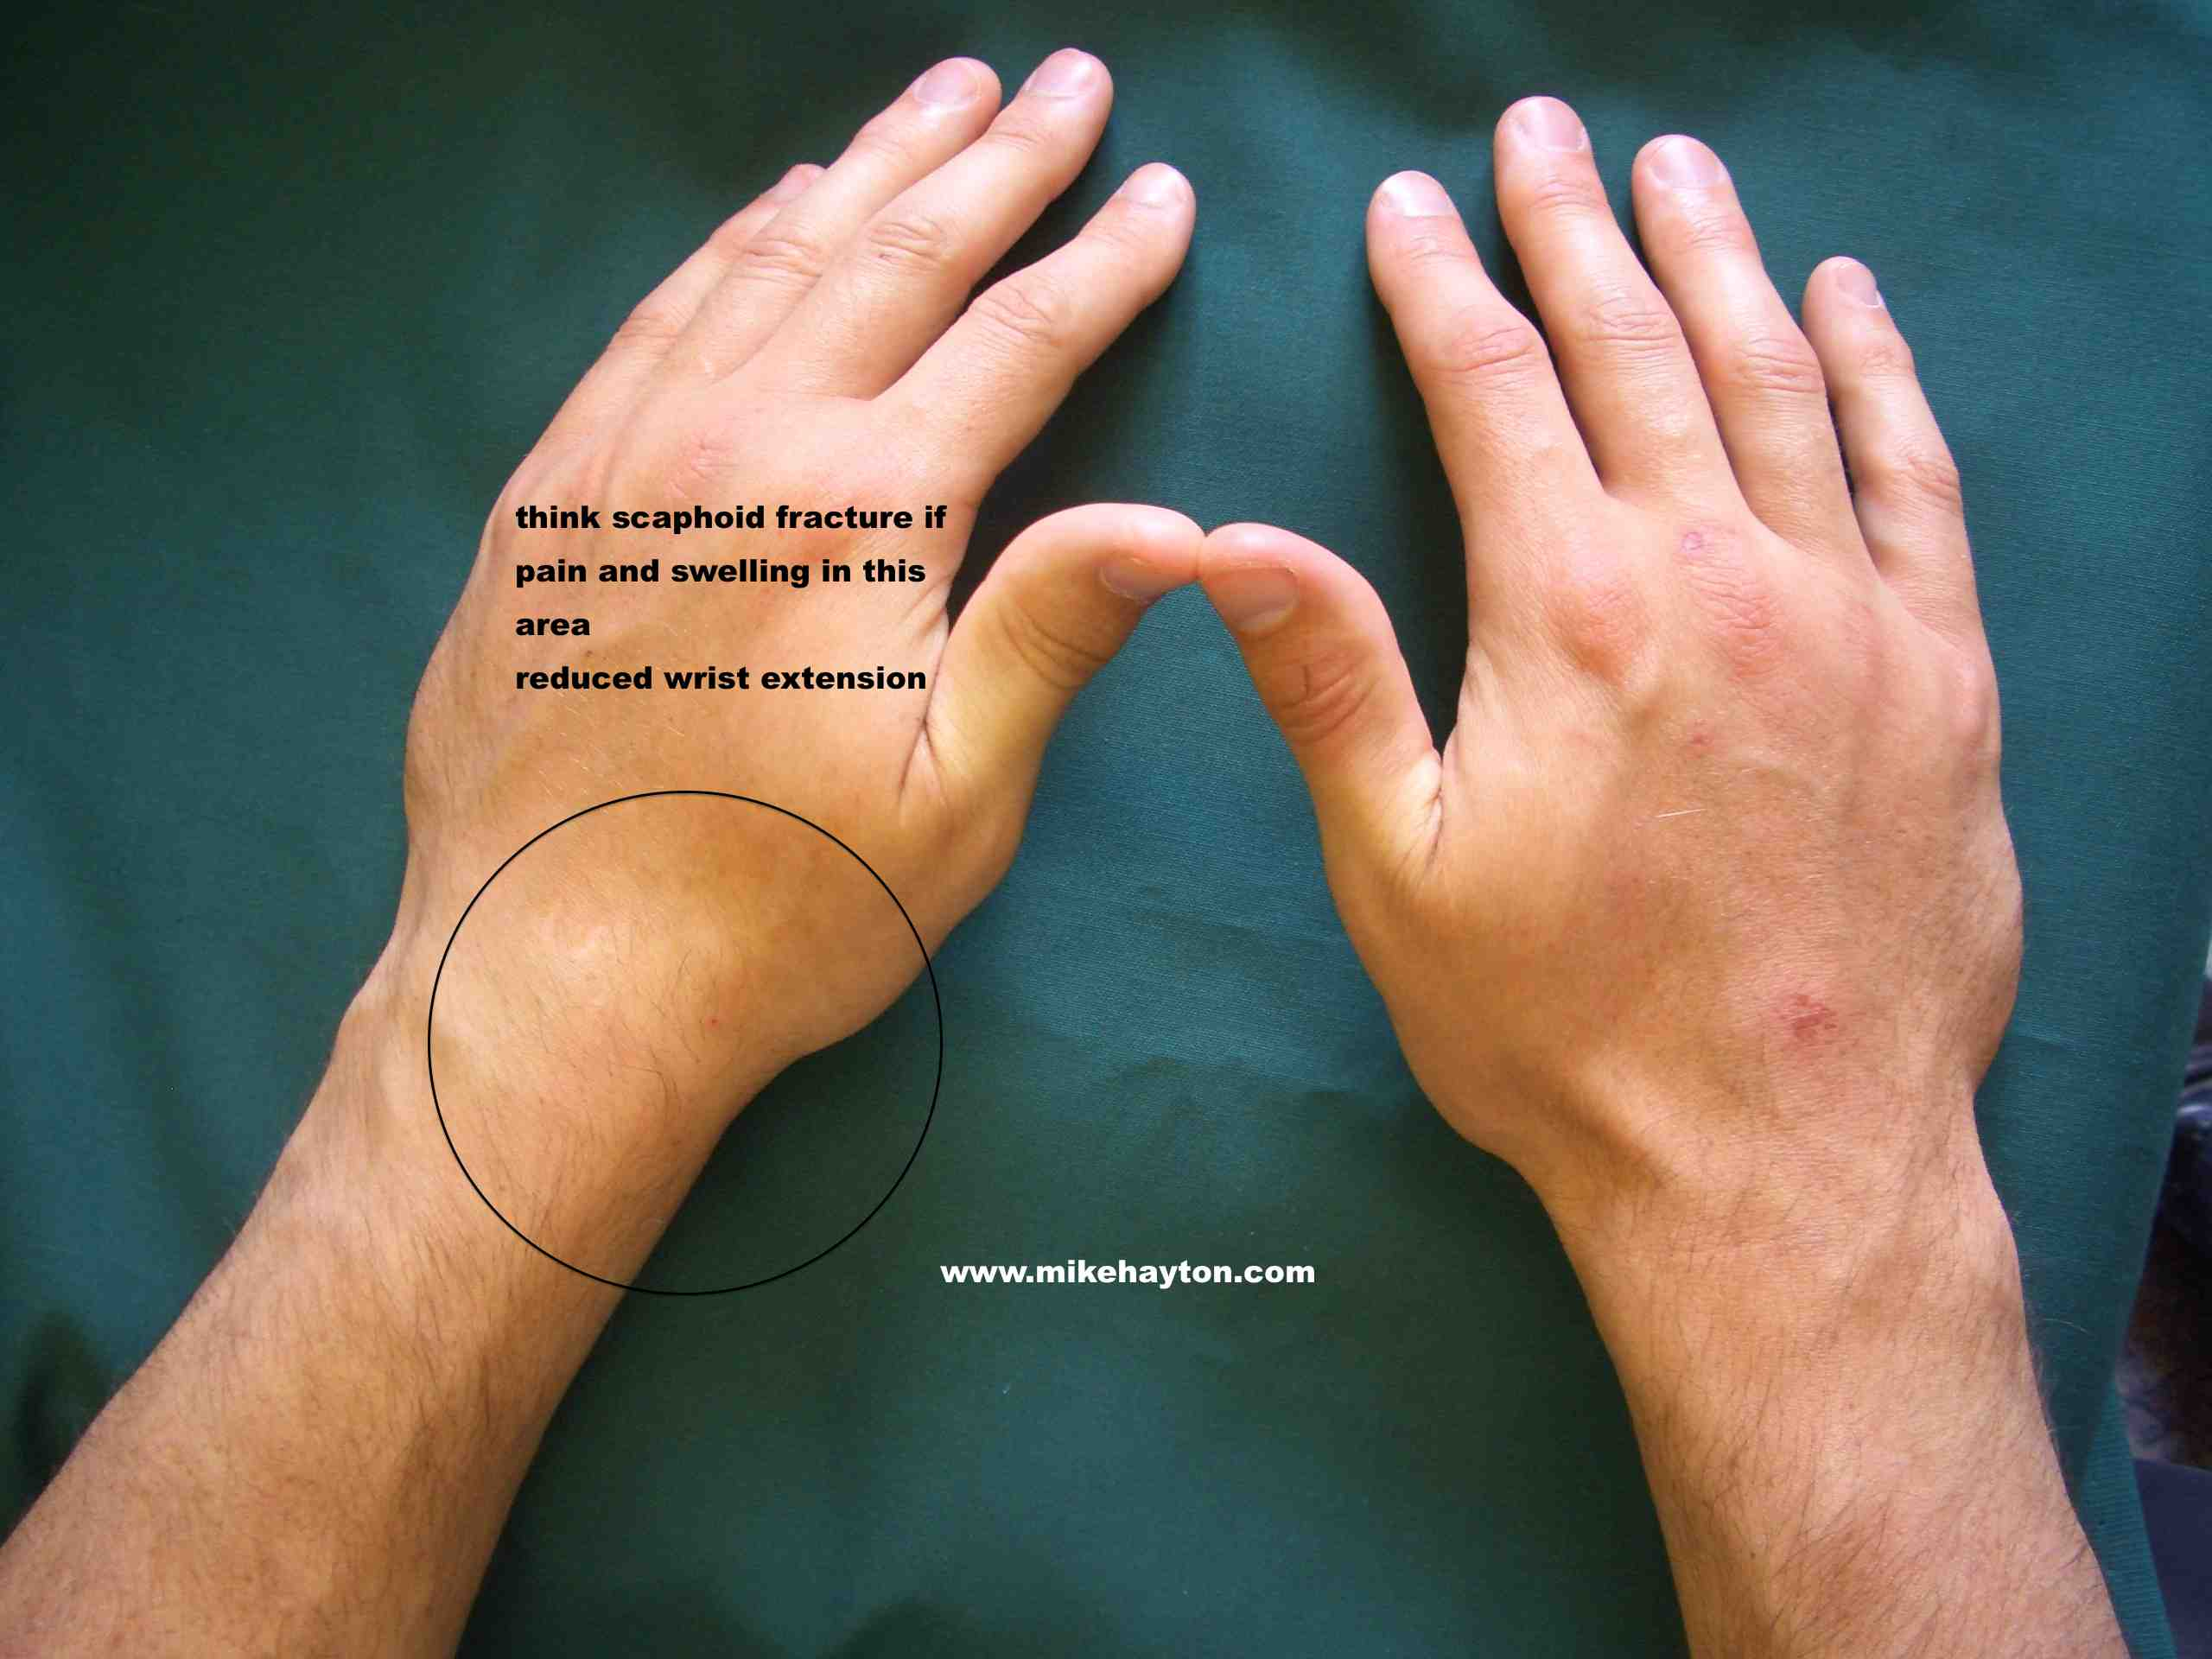 scaphoid fracture thumb numbness